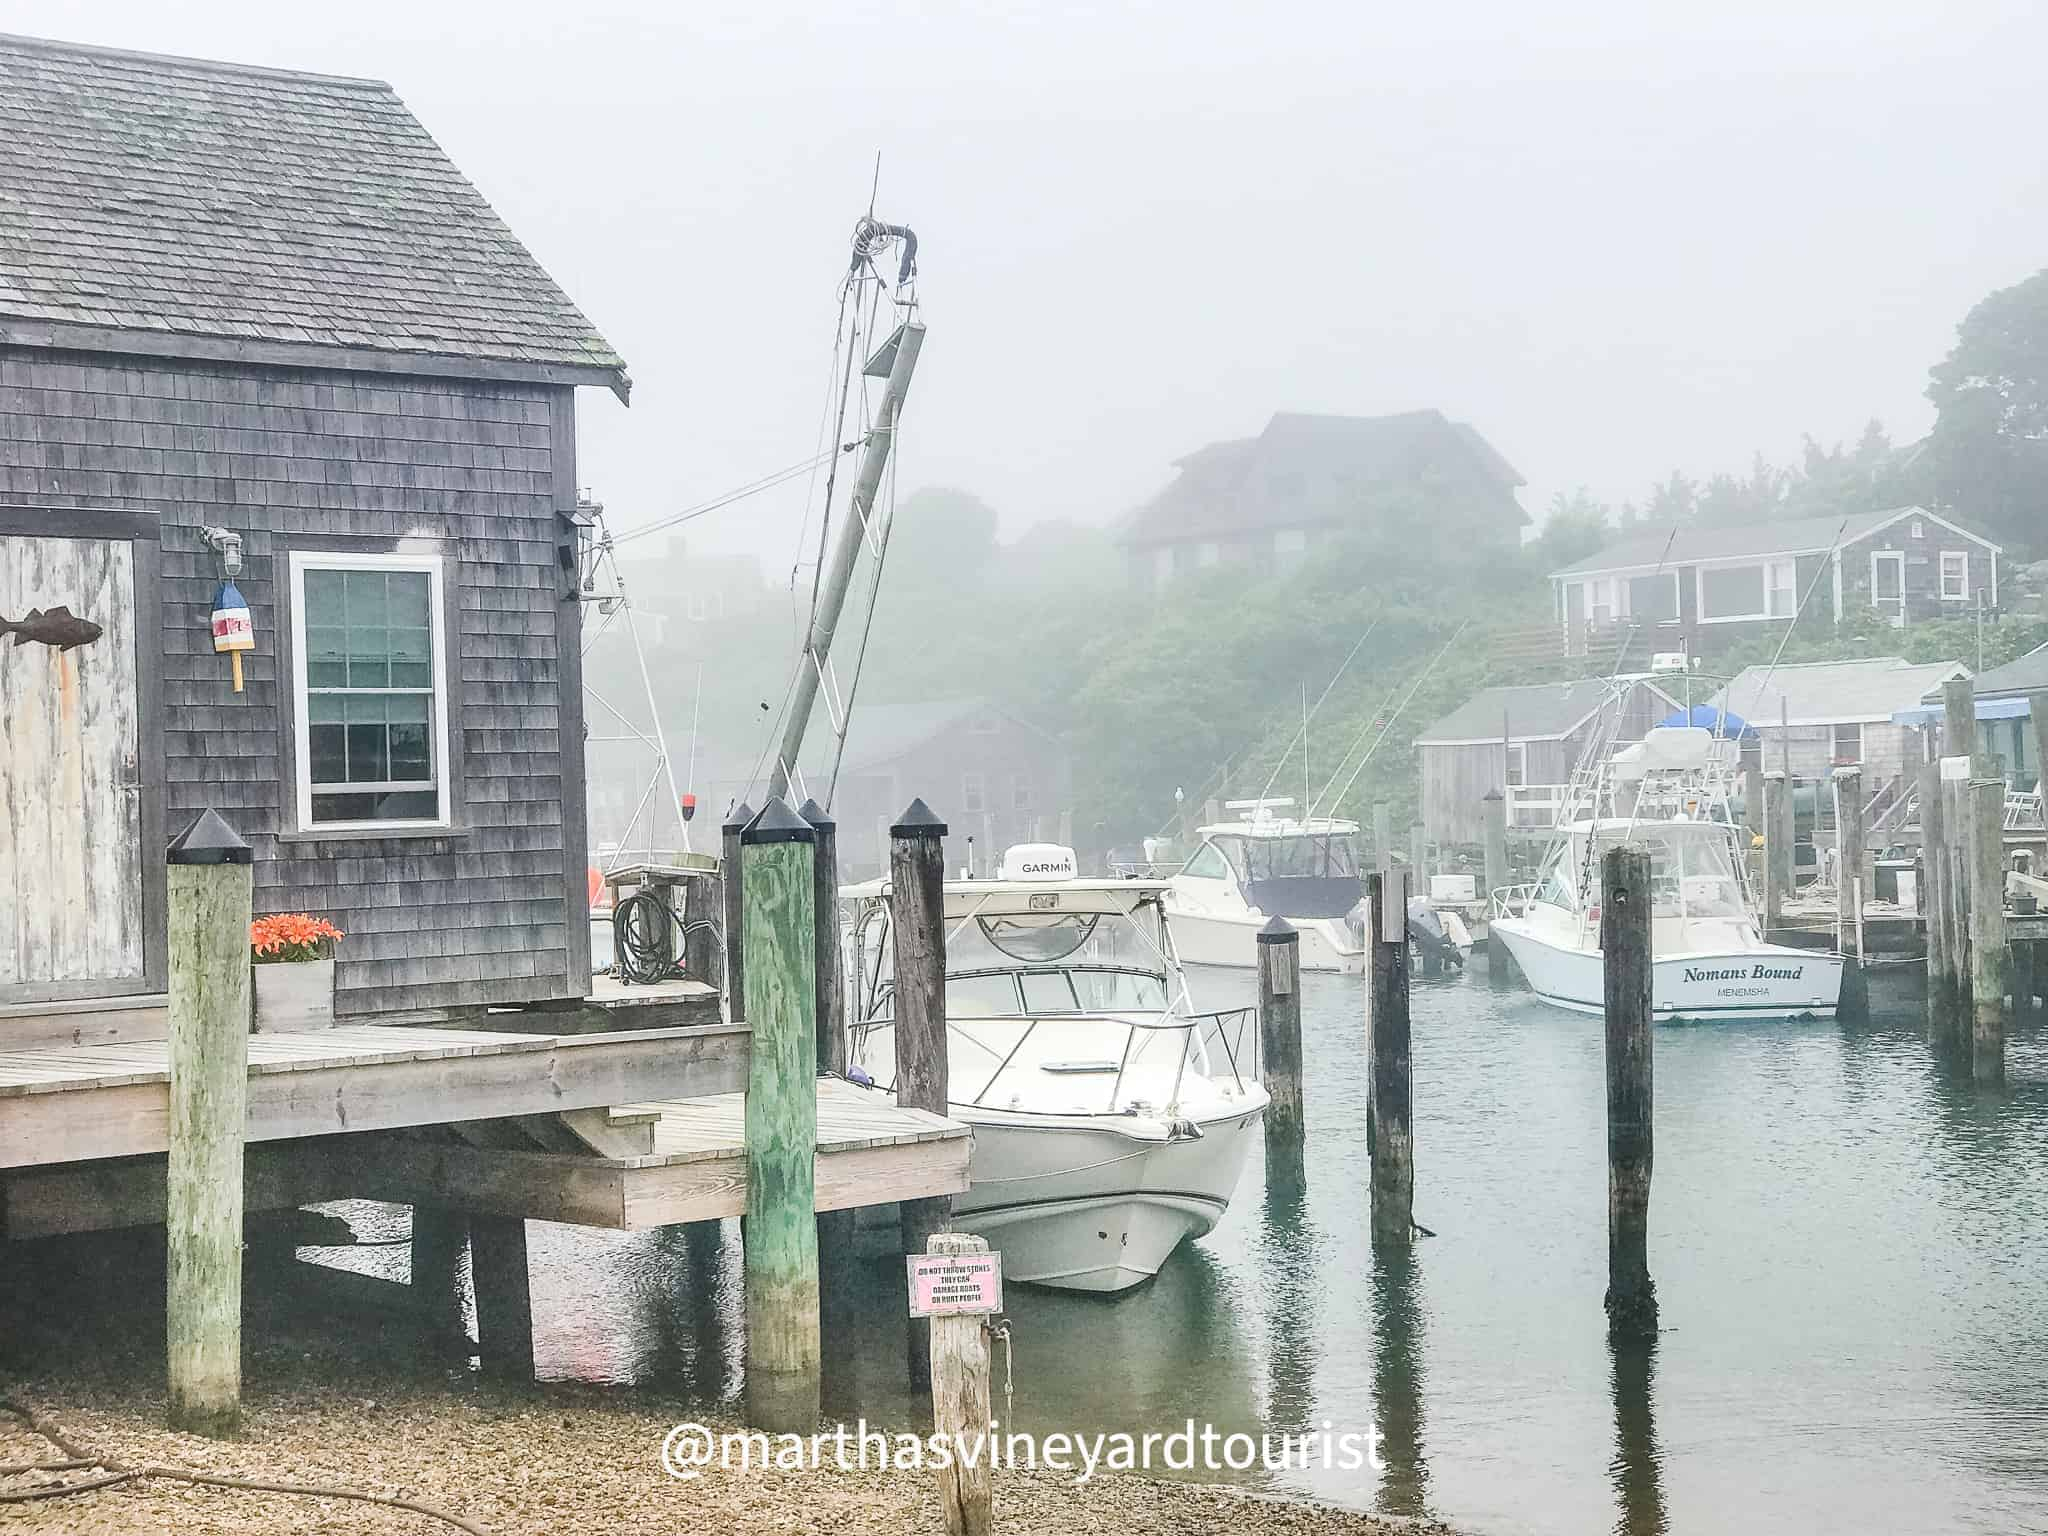 Menemsha village shrouded in mist